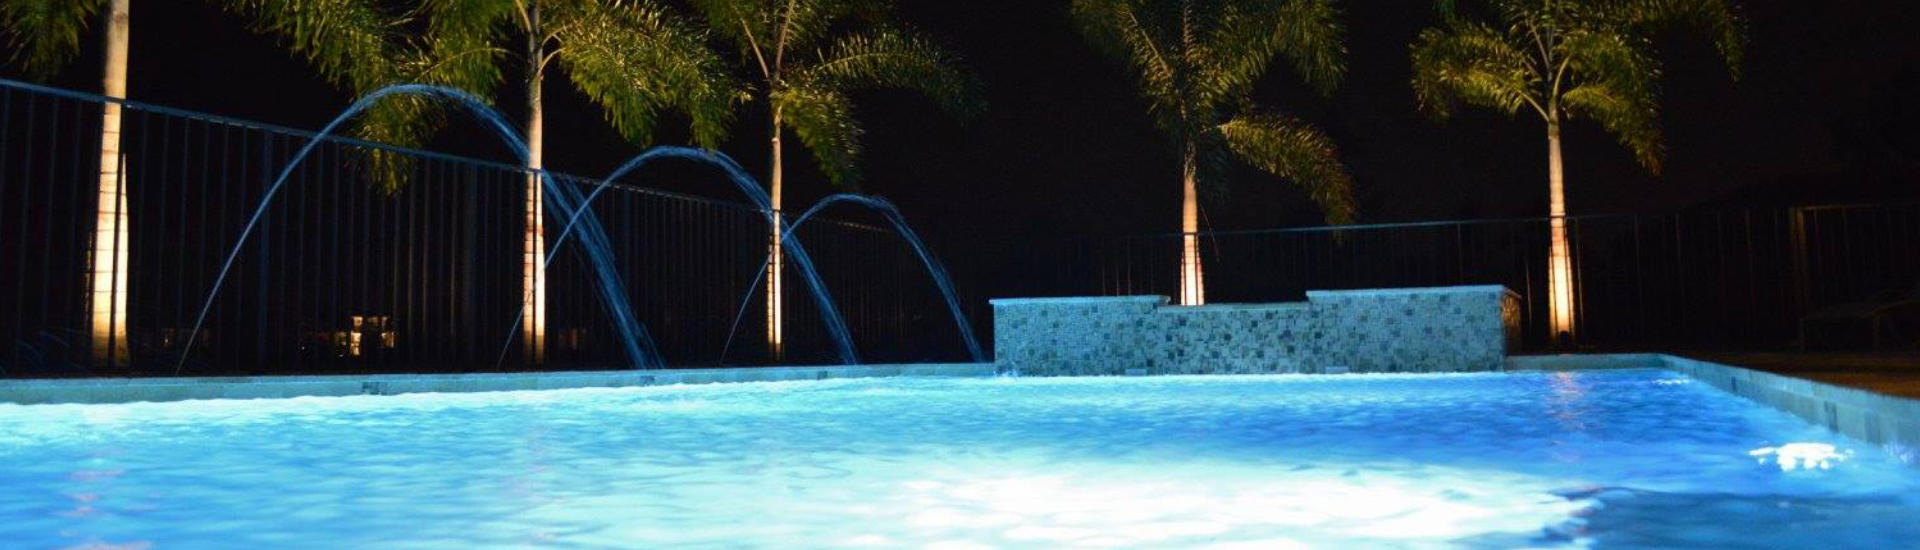 night view of a lit backyard swimming pool with fountains